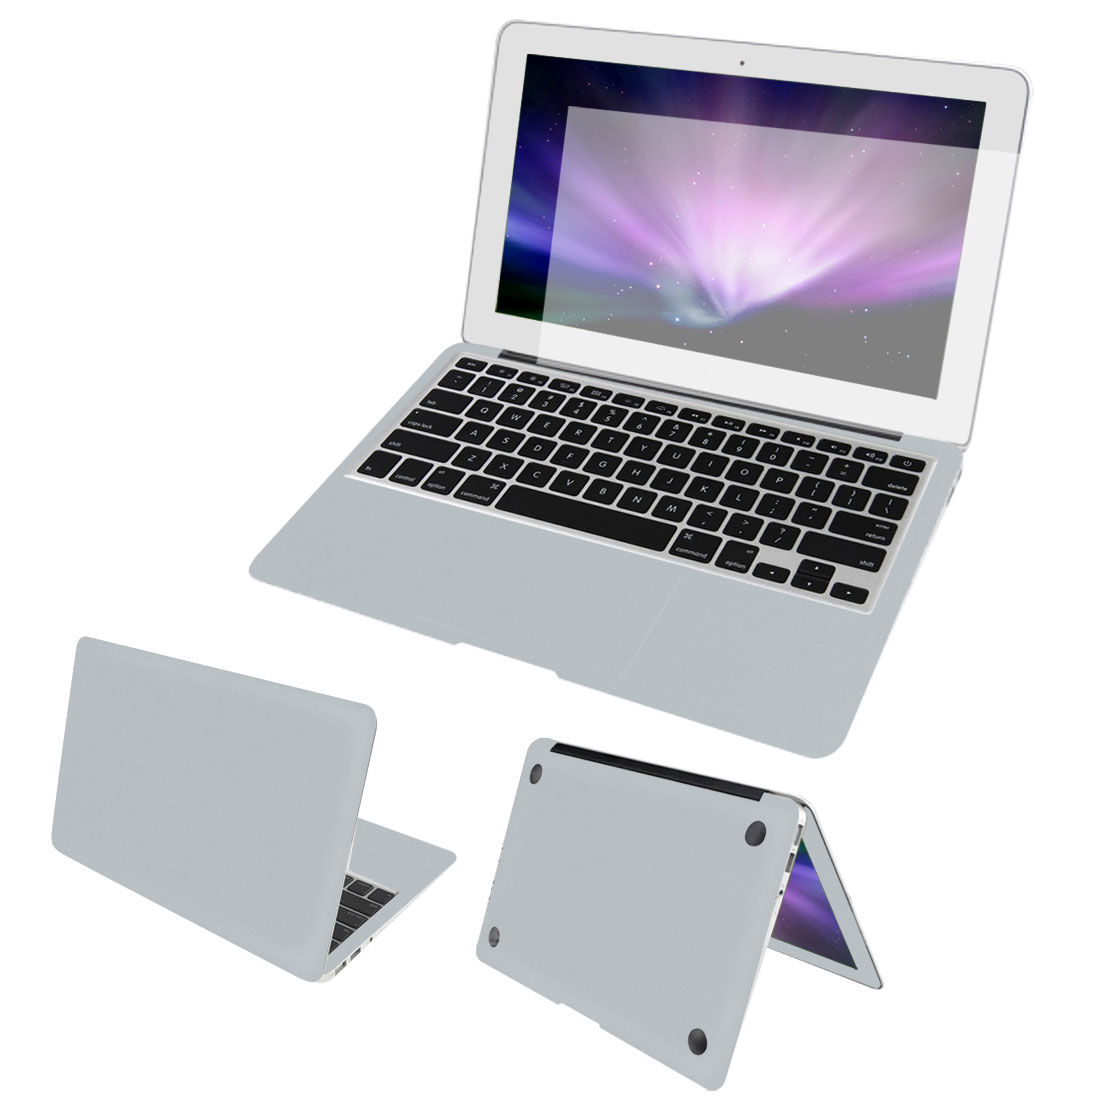 Silver Tone Body Wrap Protector Skin Screen Guard Dust Connector for Macbook Pro 15""